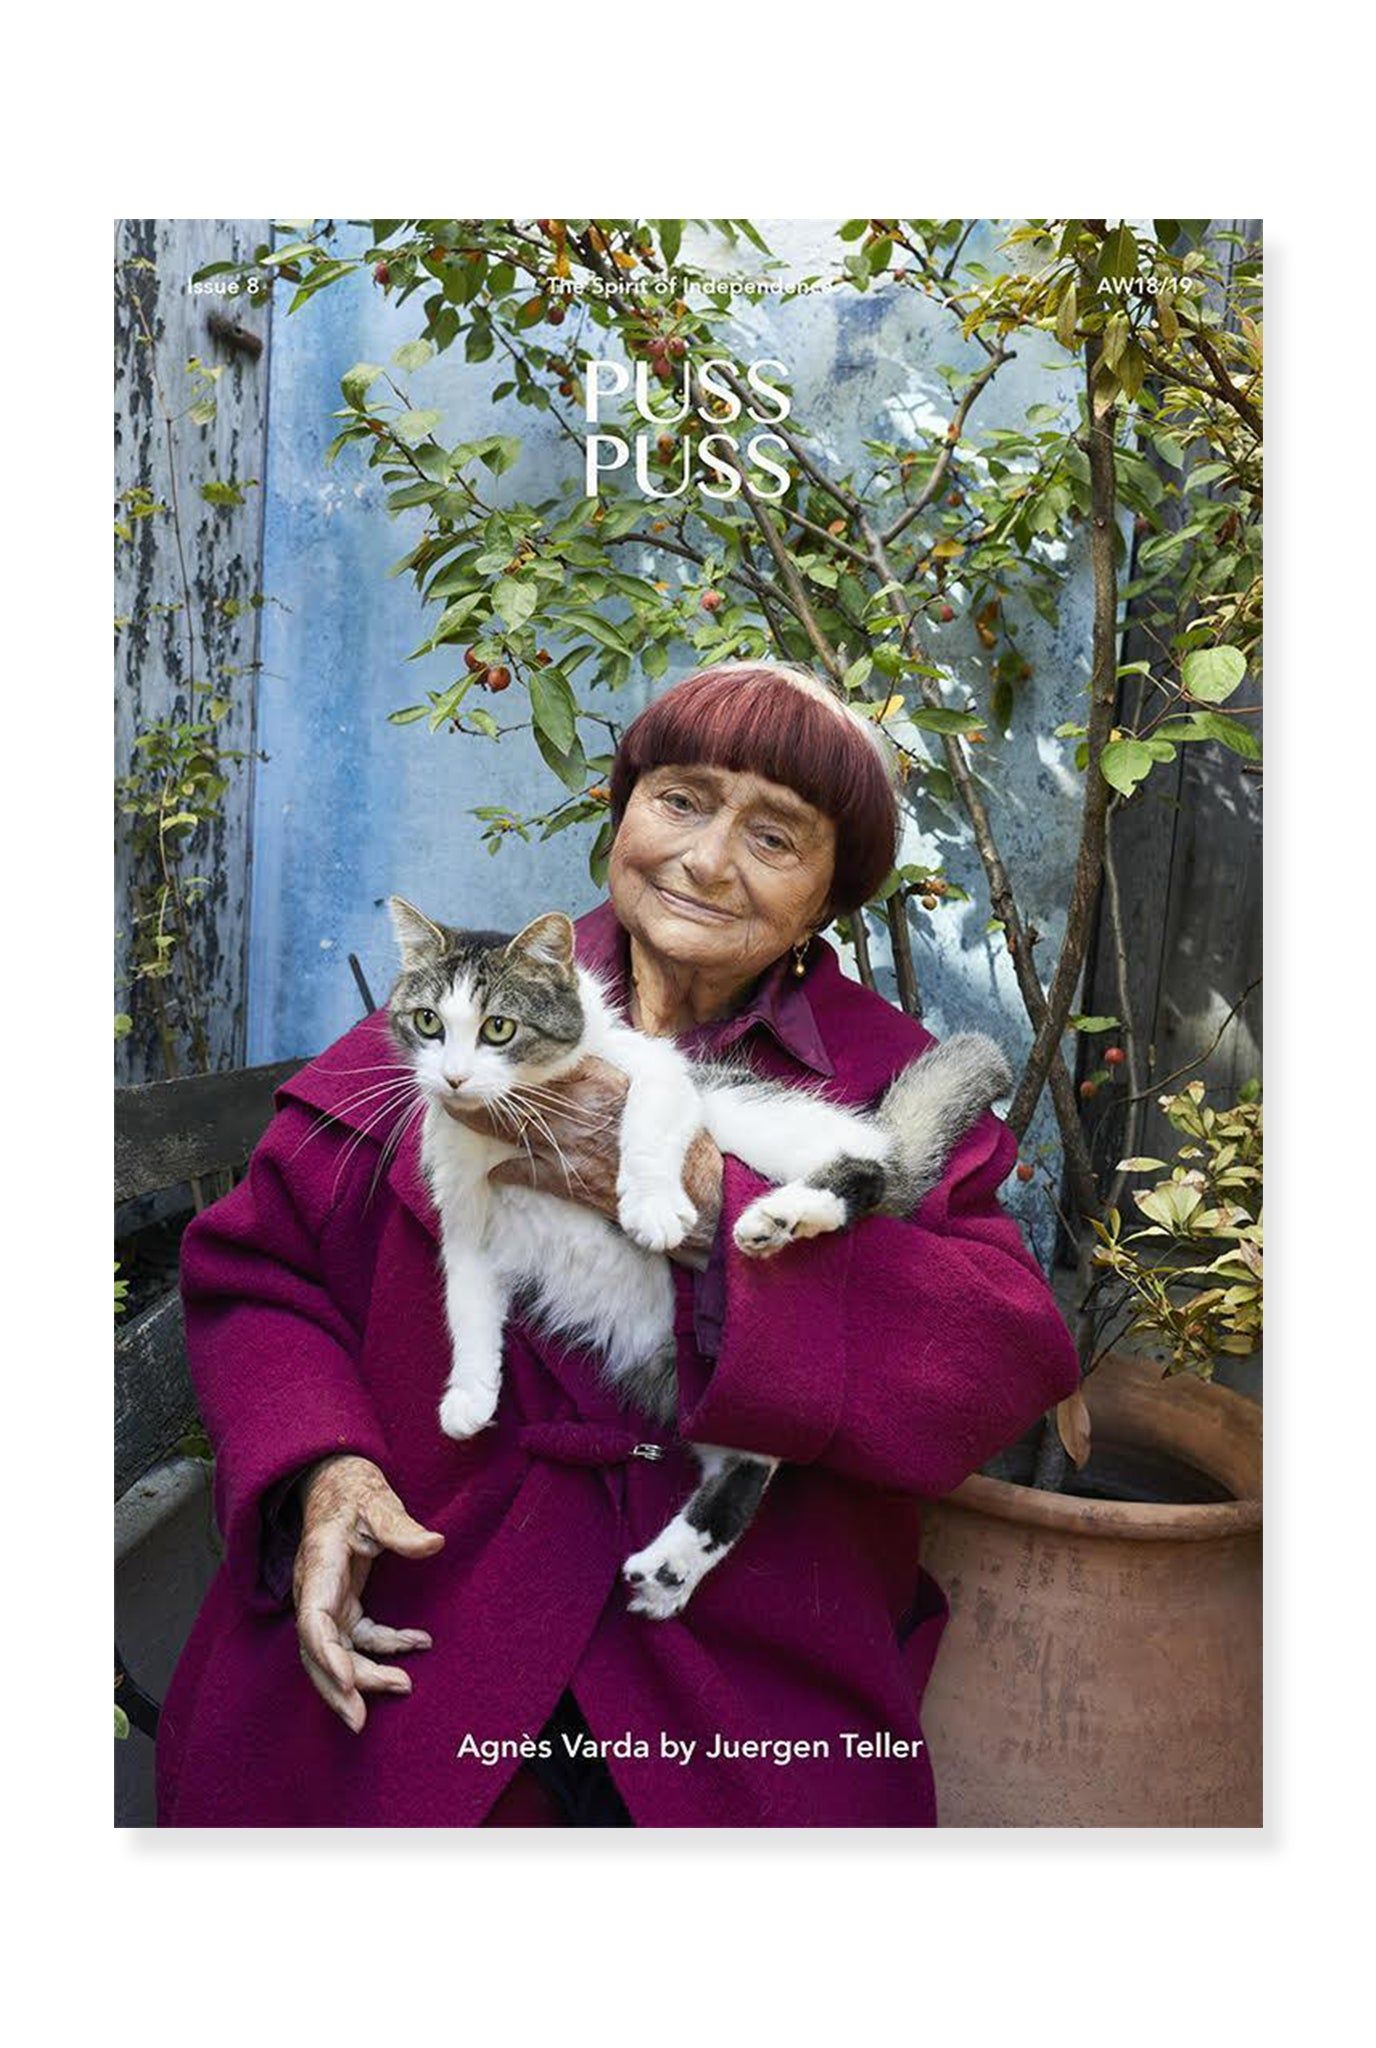 Puss Puss, Issue 8